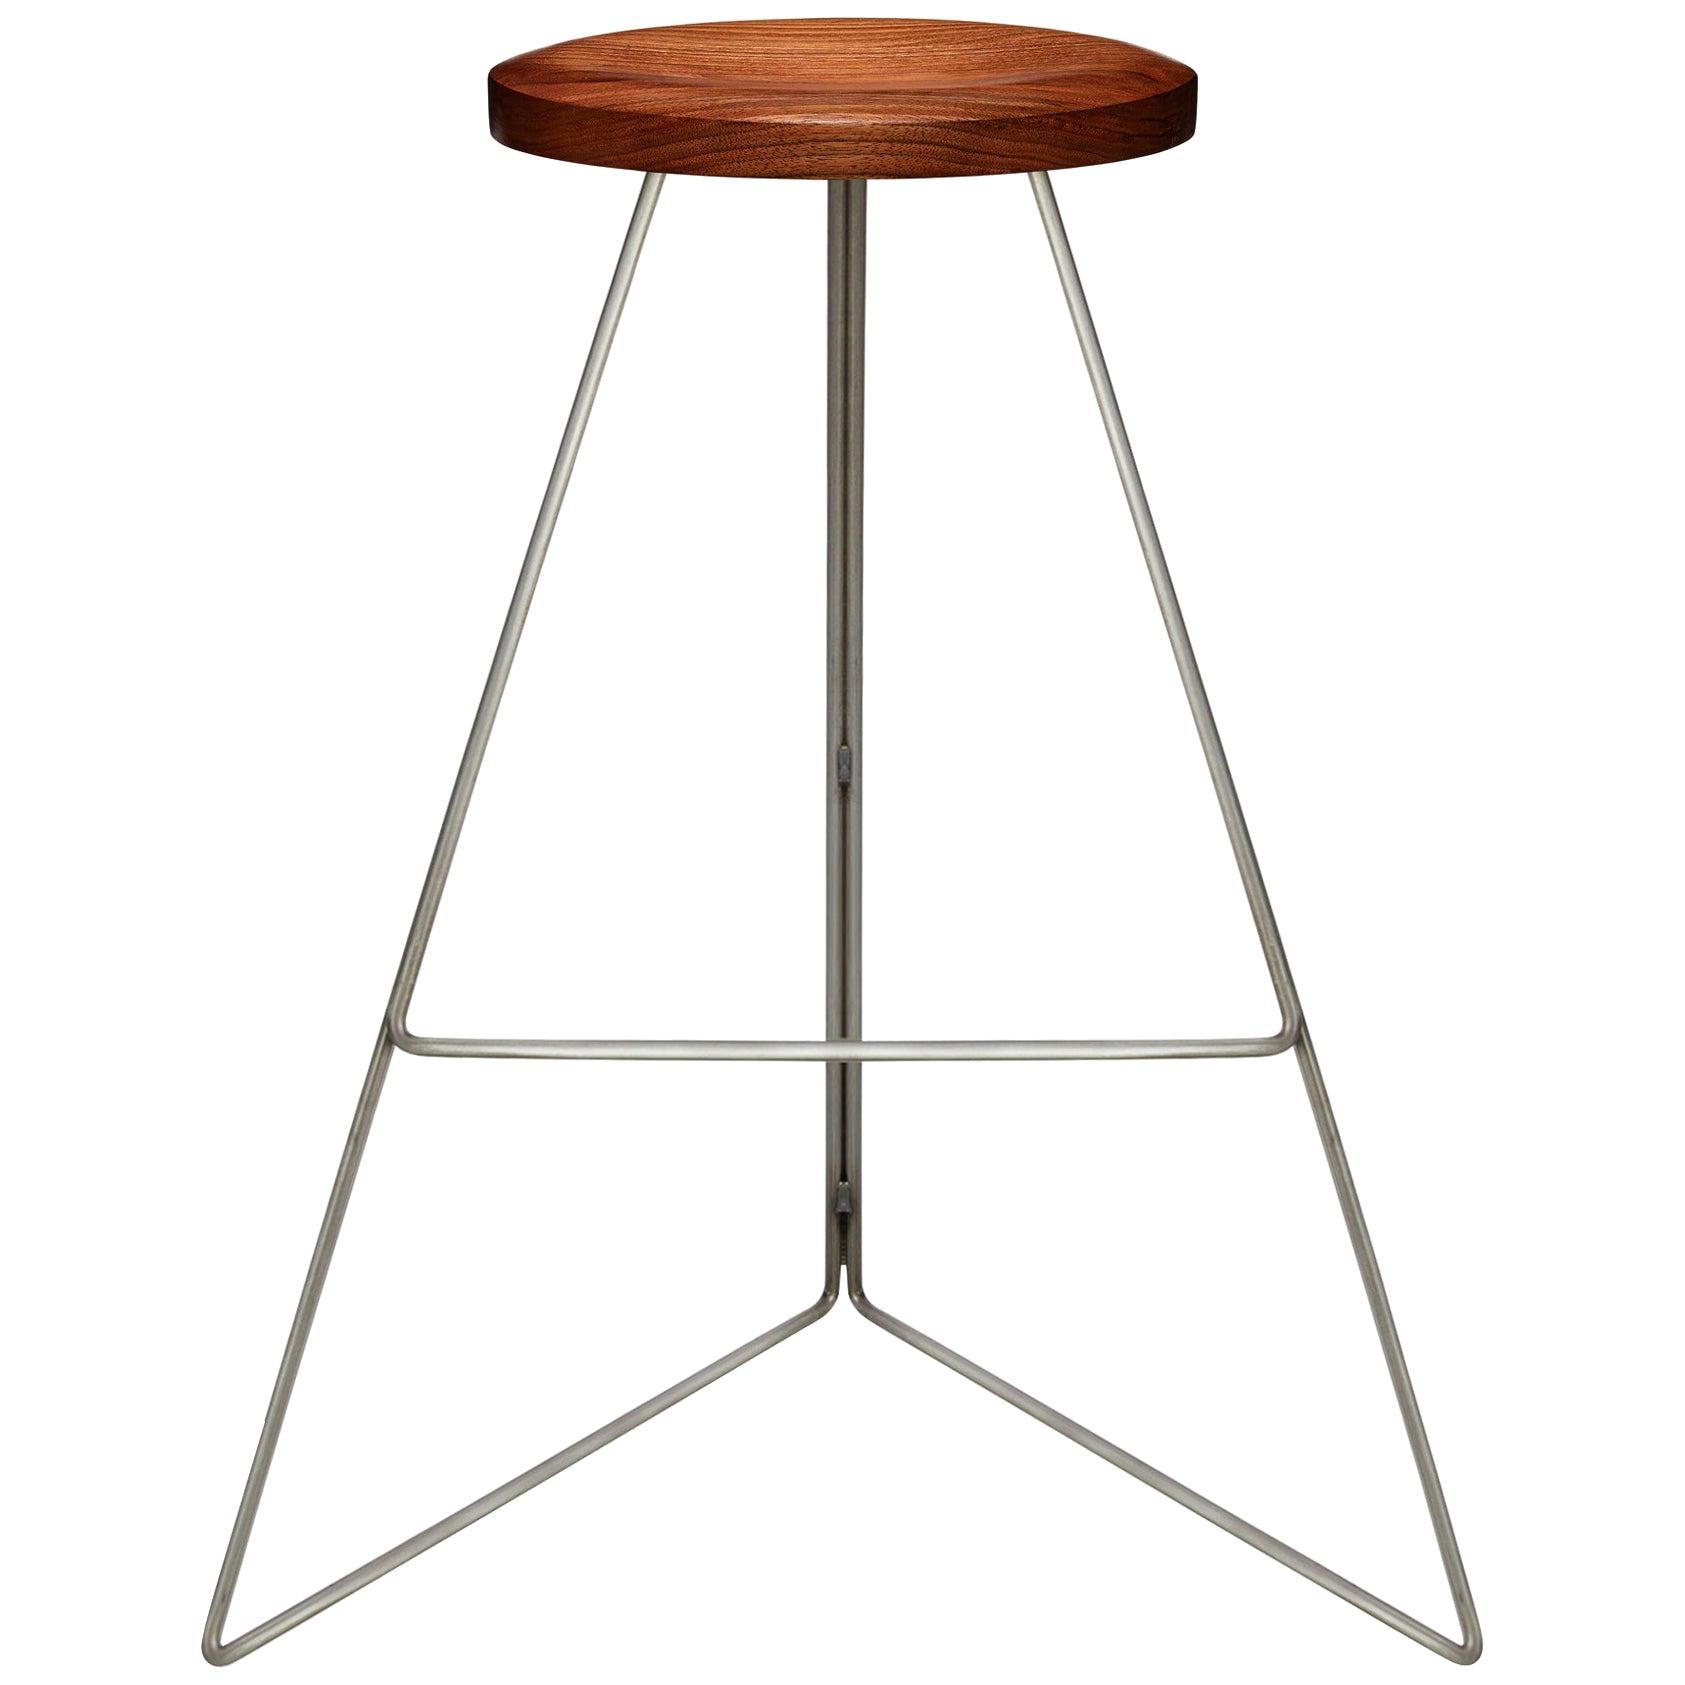 Coleman Stool, Natural Steel and Walnut, 54 Variations